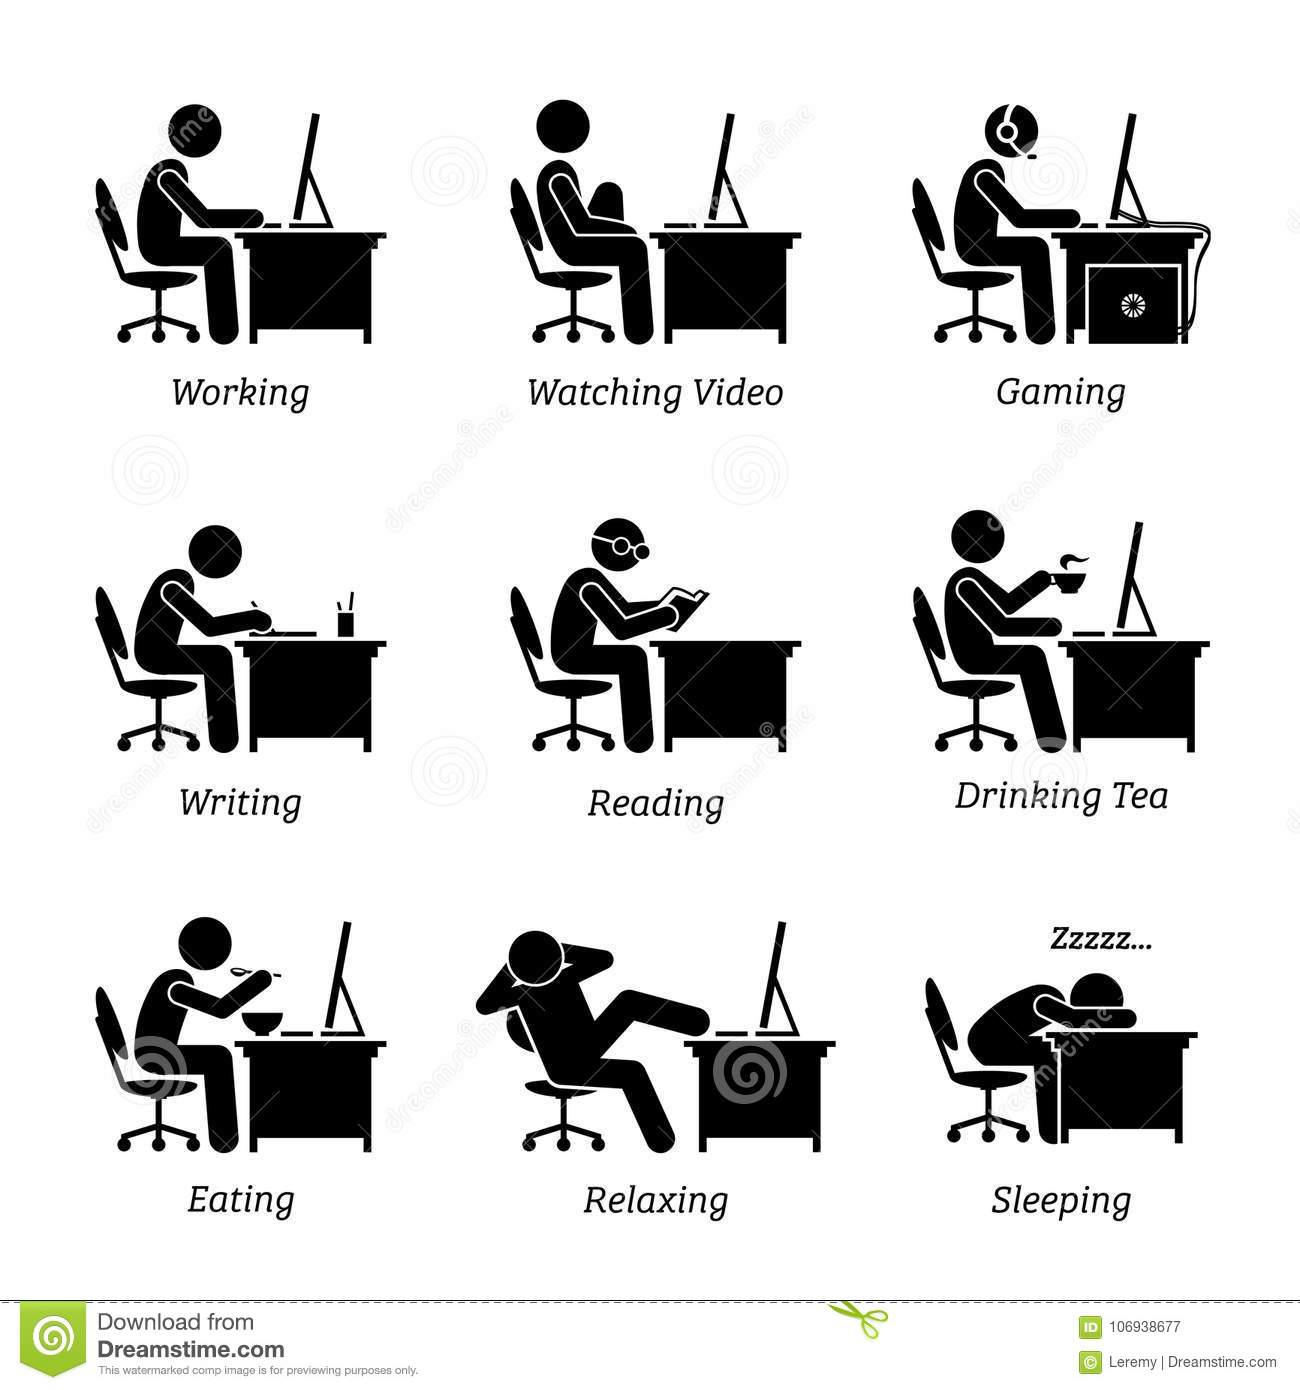 Executive Working In Front Of A Computer At Office